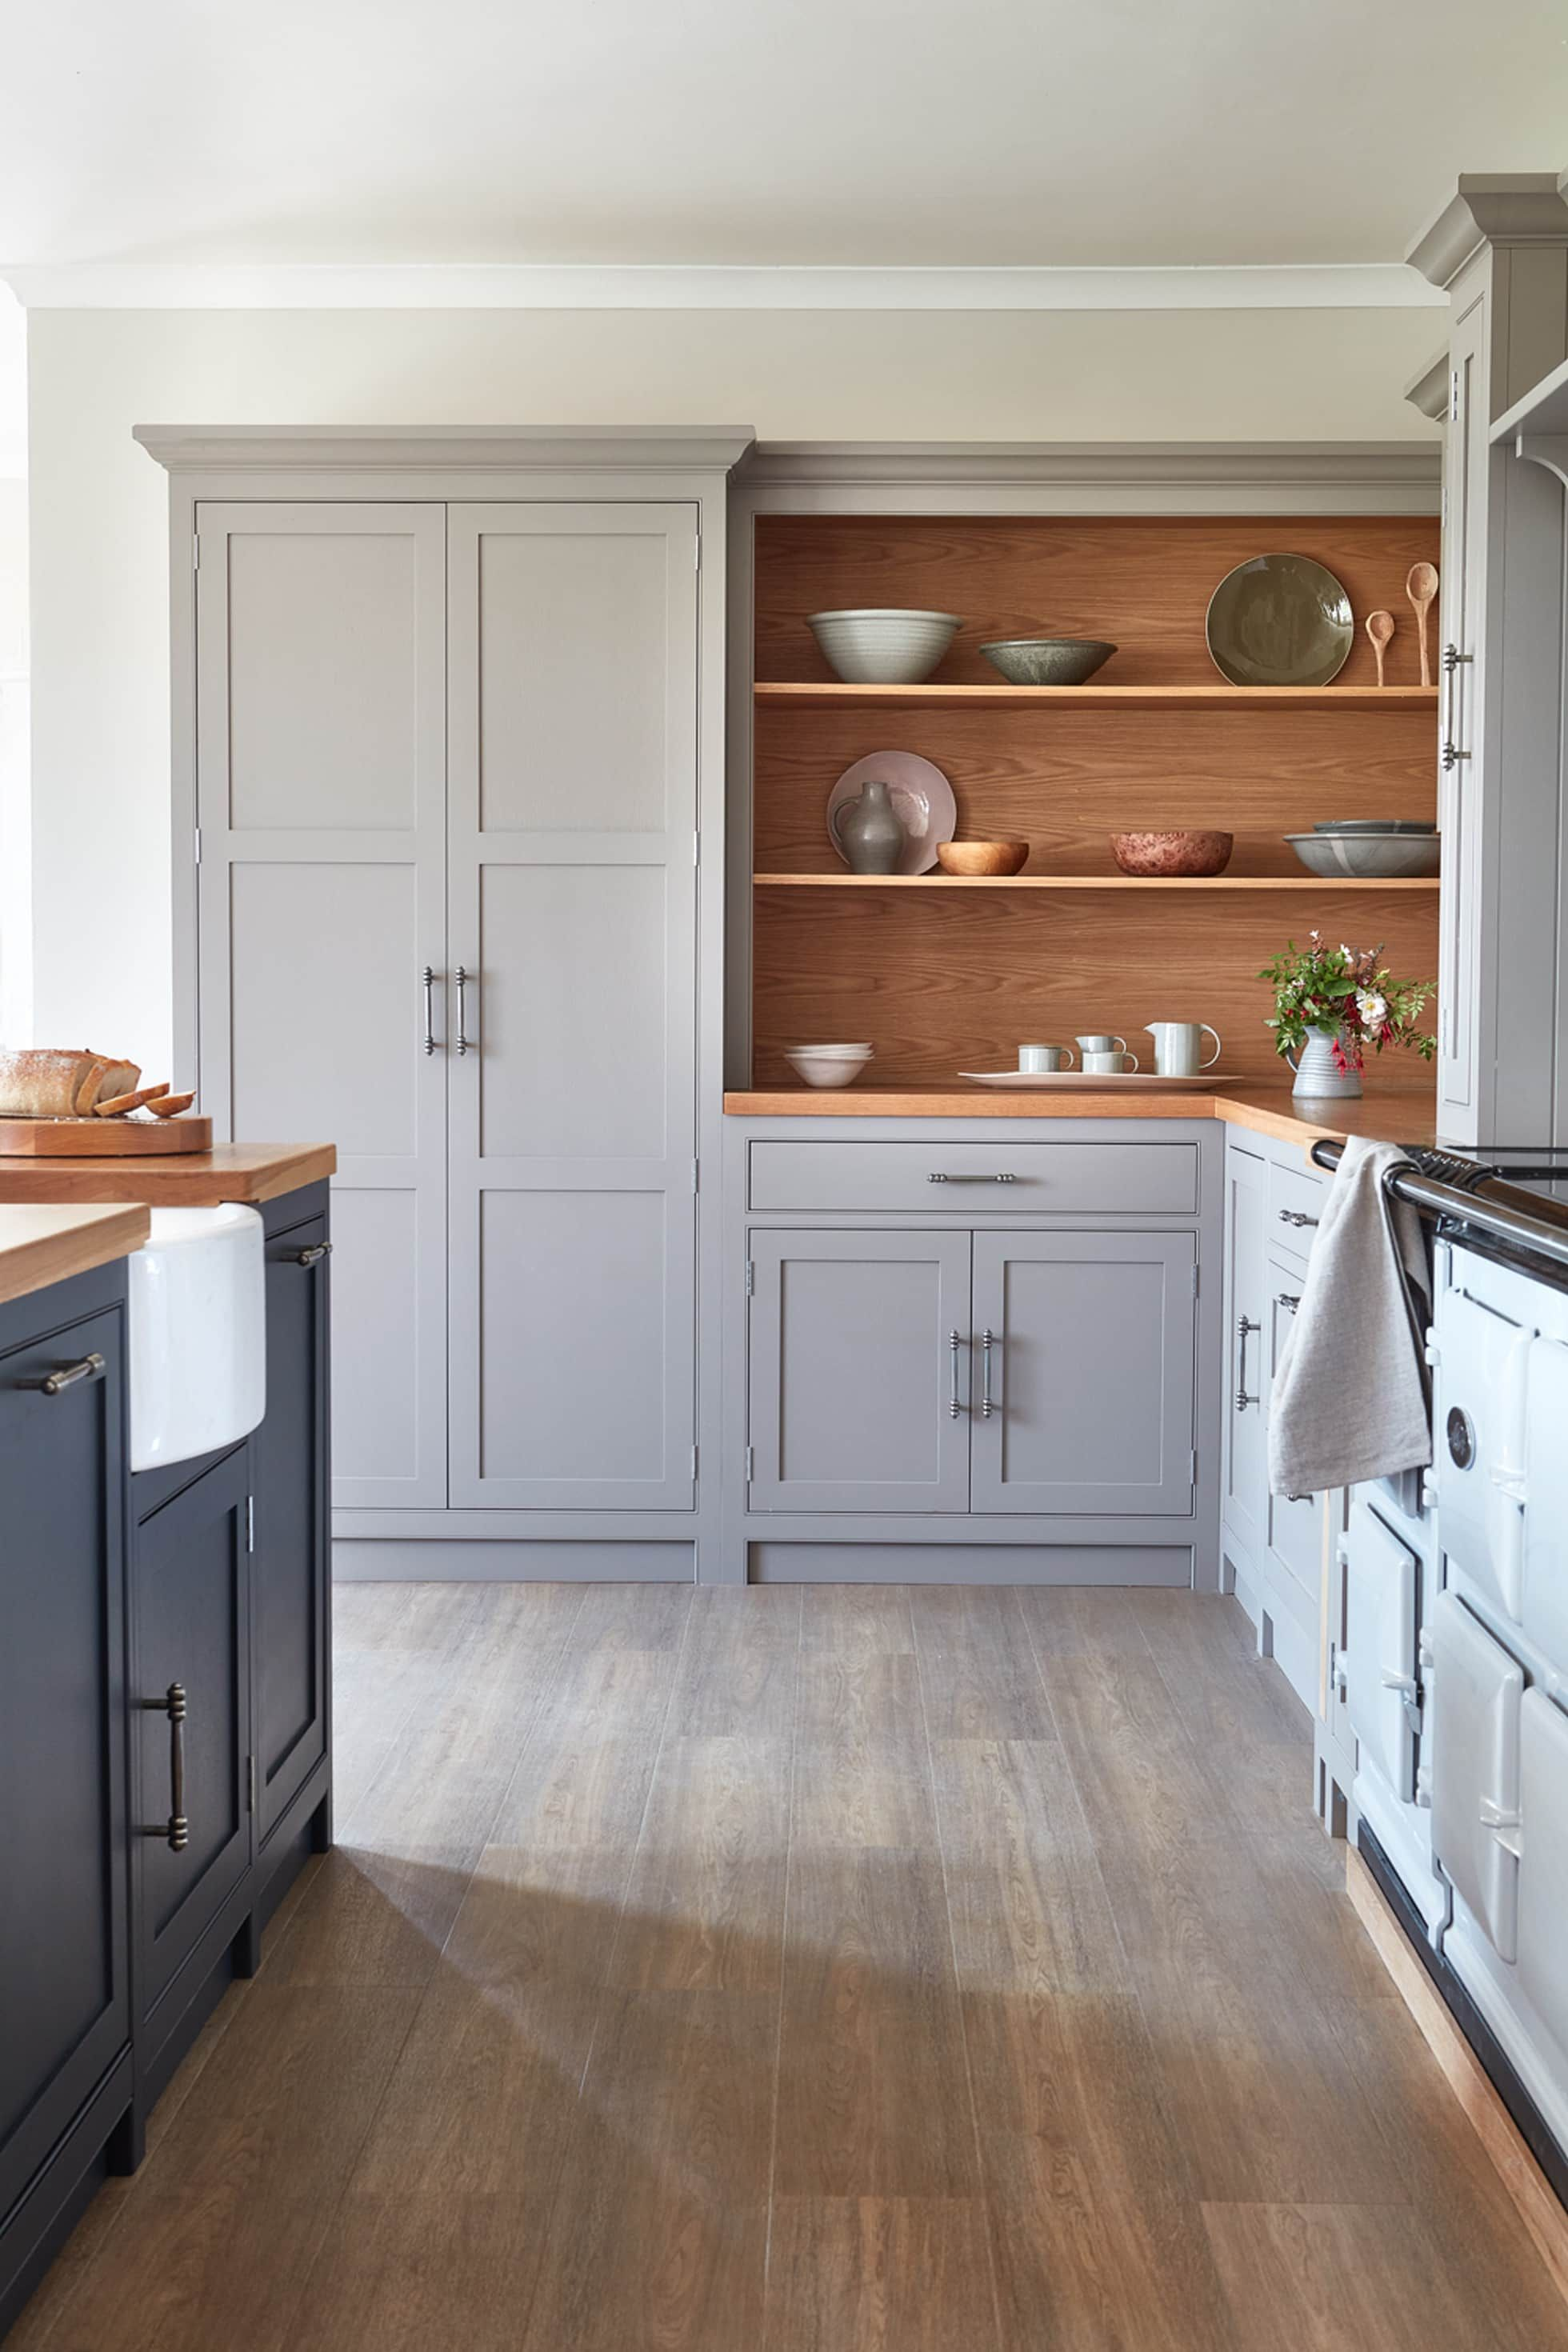 Design by  Naked Kitchens